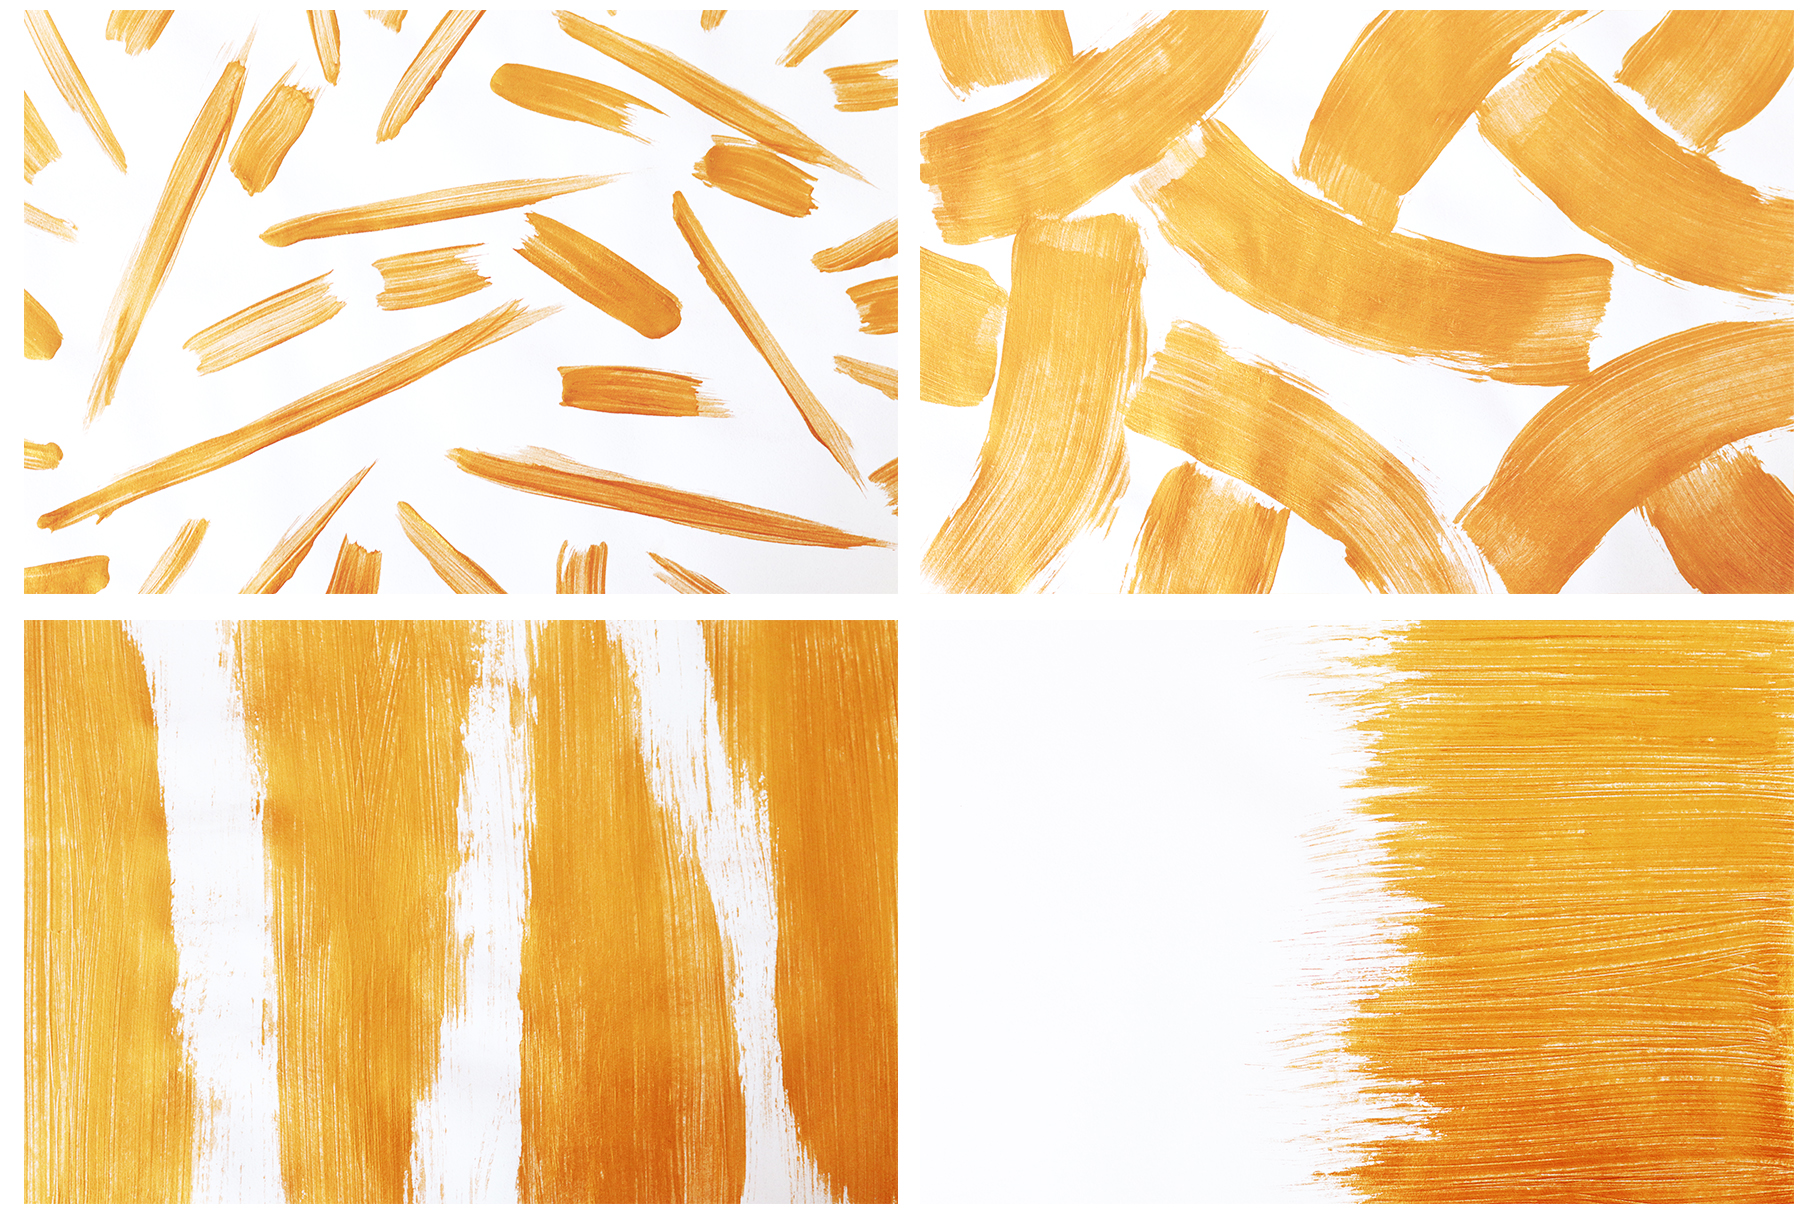 Gold & White Backgrounds, Wedding Invitation Papers example image 3